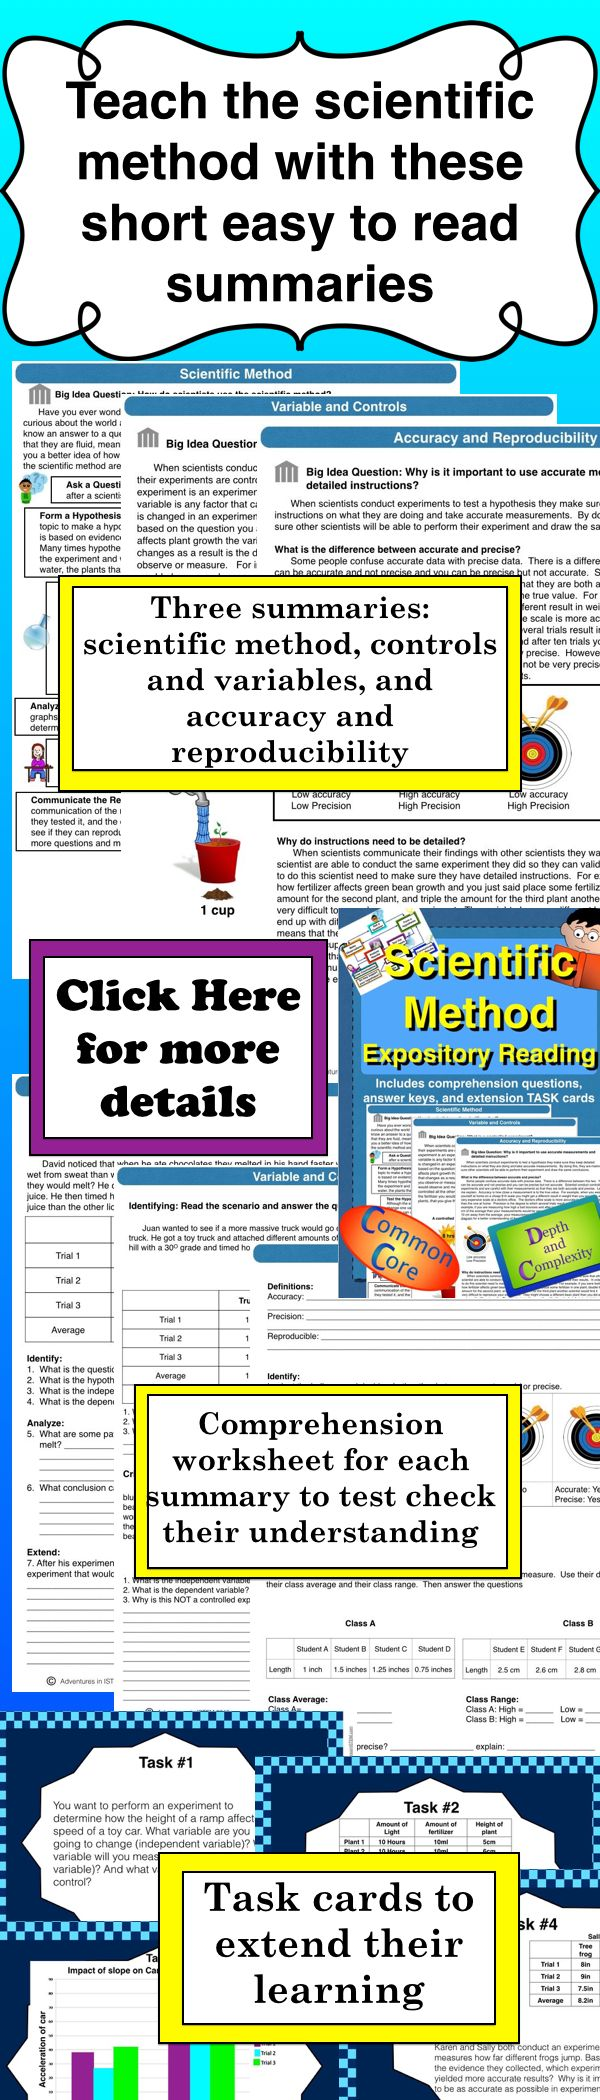 Scientific Method Guided Reading Close Reading Distance Learning Scientific Method Comprehension Worksheets Reading Comprehension Worksheets